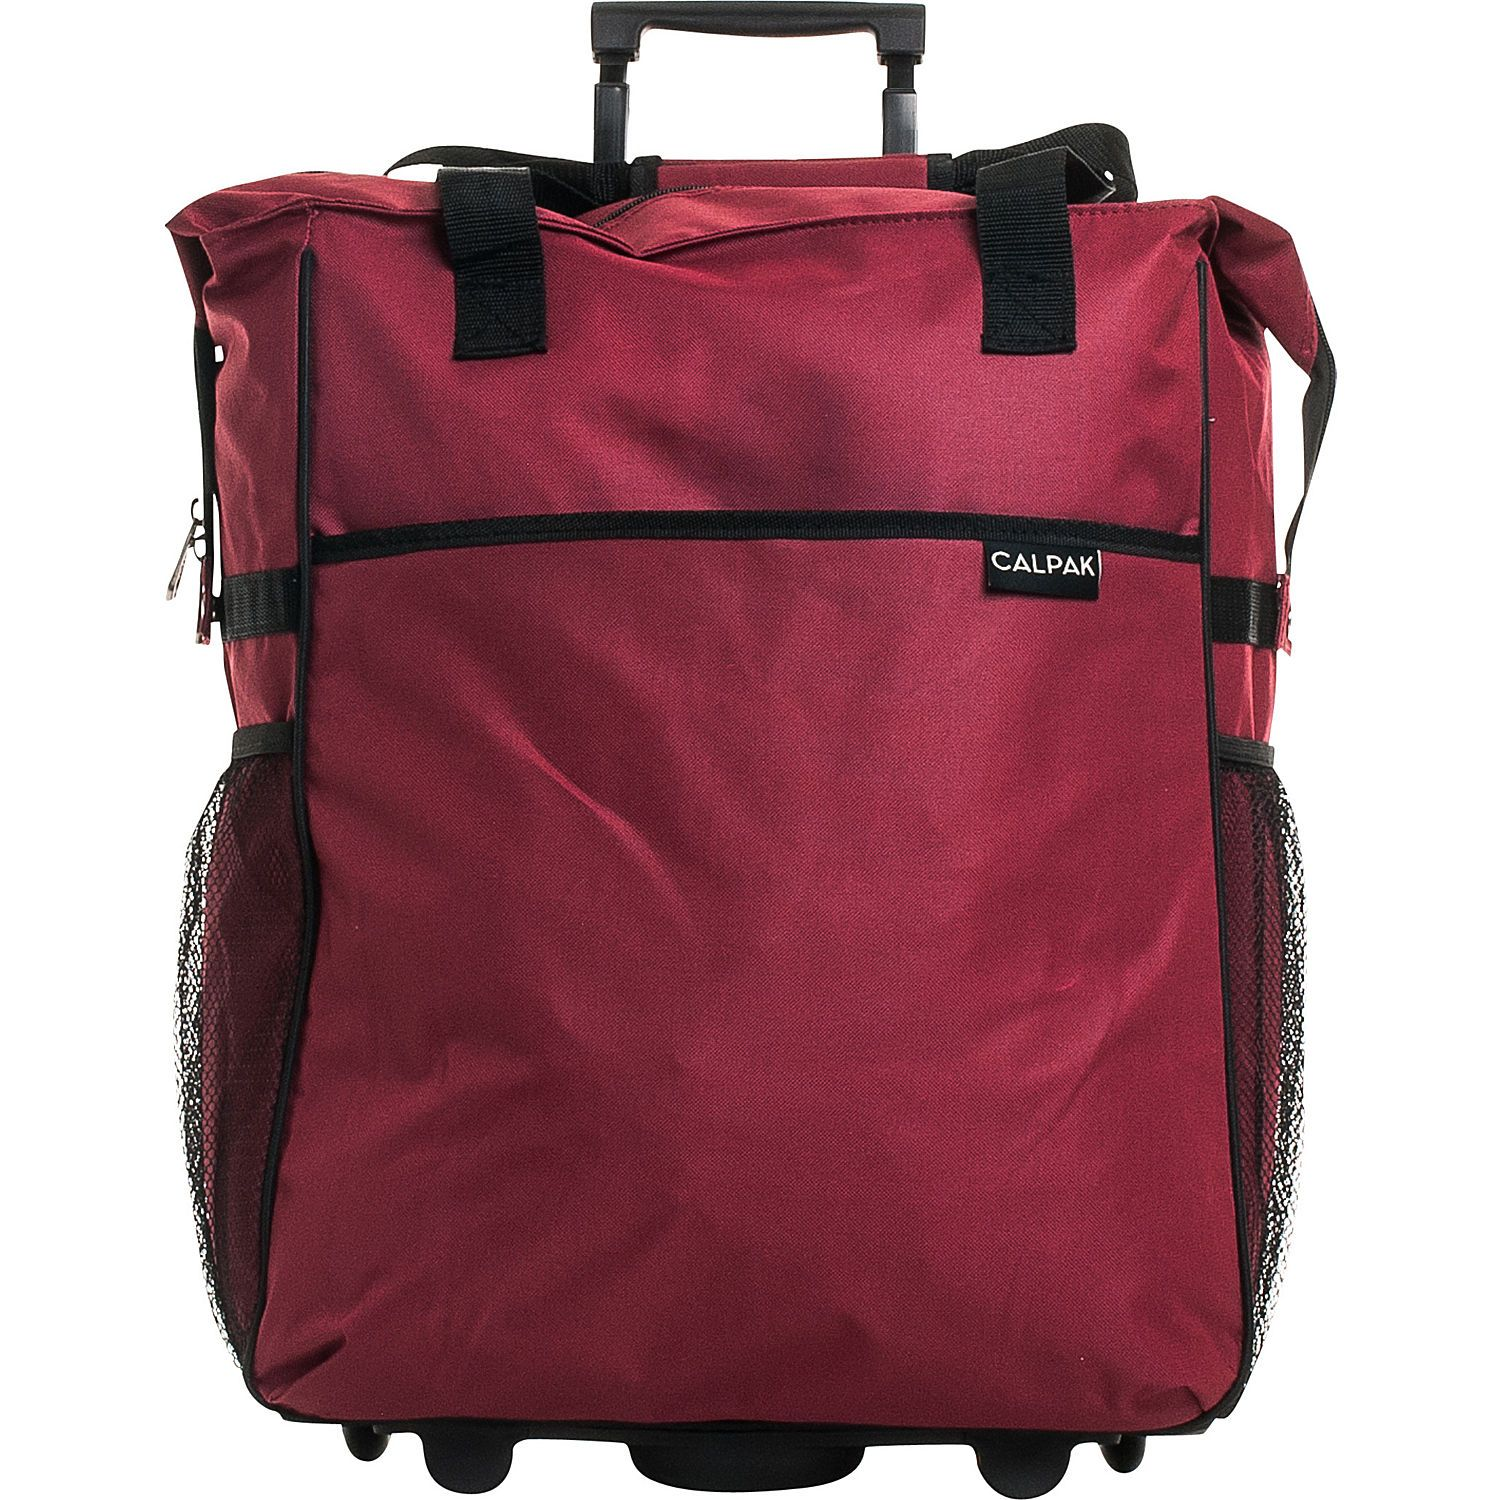 Buy The Calpak The Big Eazy 20 Rolling Tote At Ebags Available In A Variety Rolling Tote Bag Shopping Tote Bag Rolling Tote